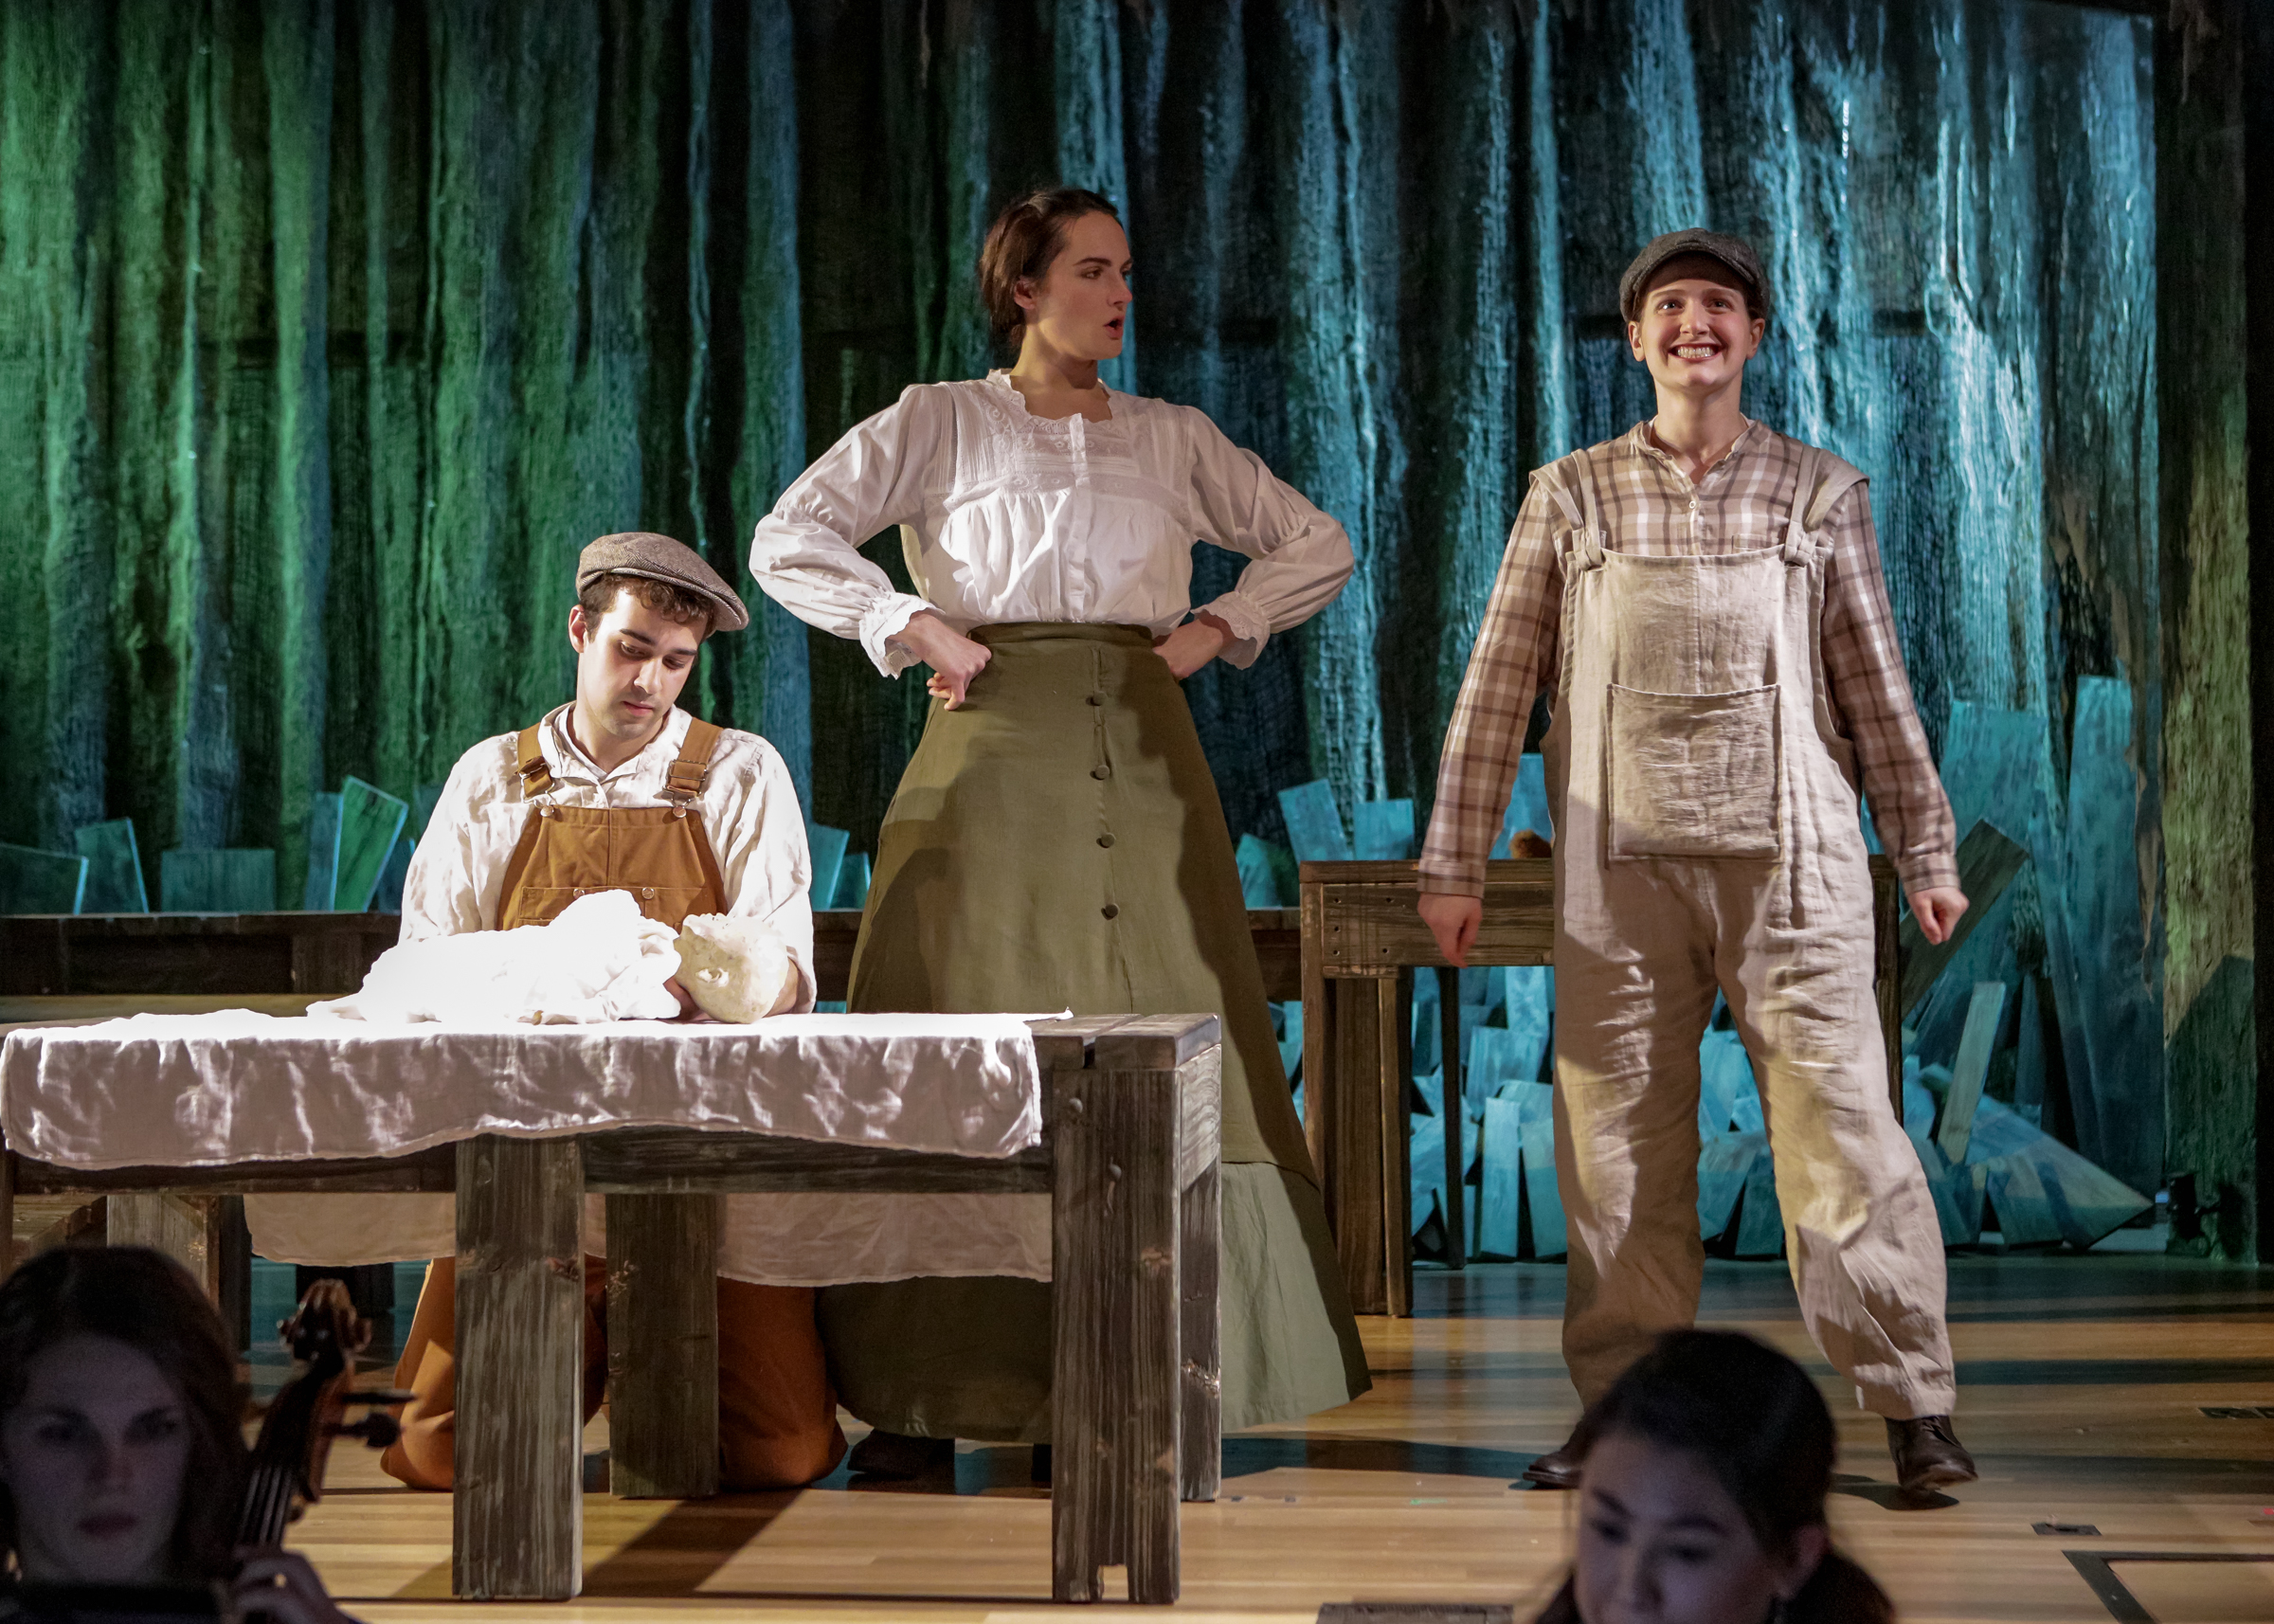 Ann Fogler as Brother, Luca Coura as Doodle, and Britt Brown as Mother in  The Scarlet Ibis .  Boston Opera Collaborative; January 2019.  Photo Credit: Dan Busler